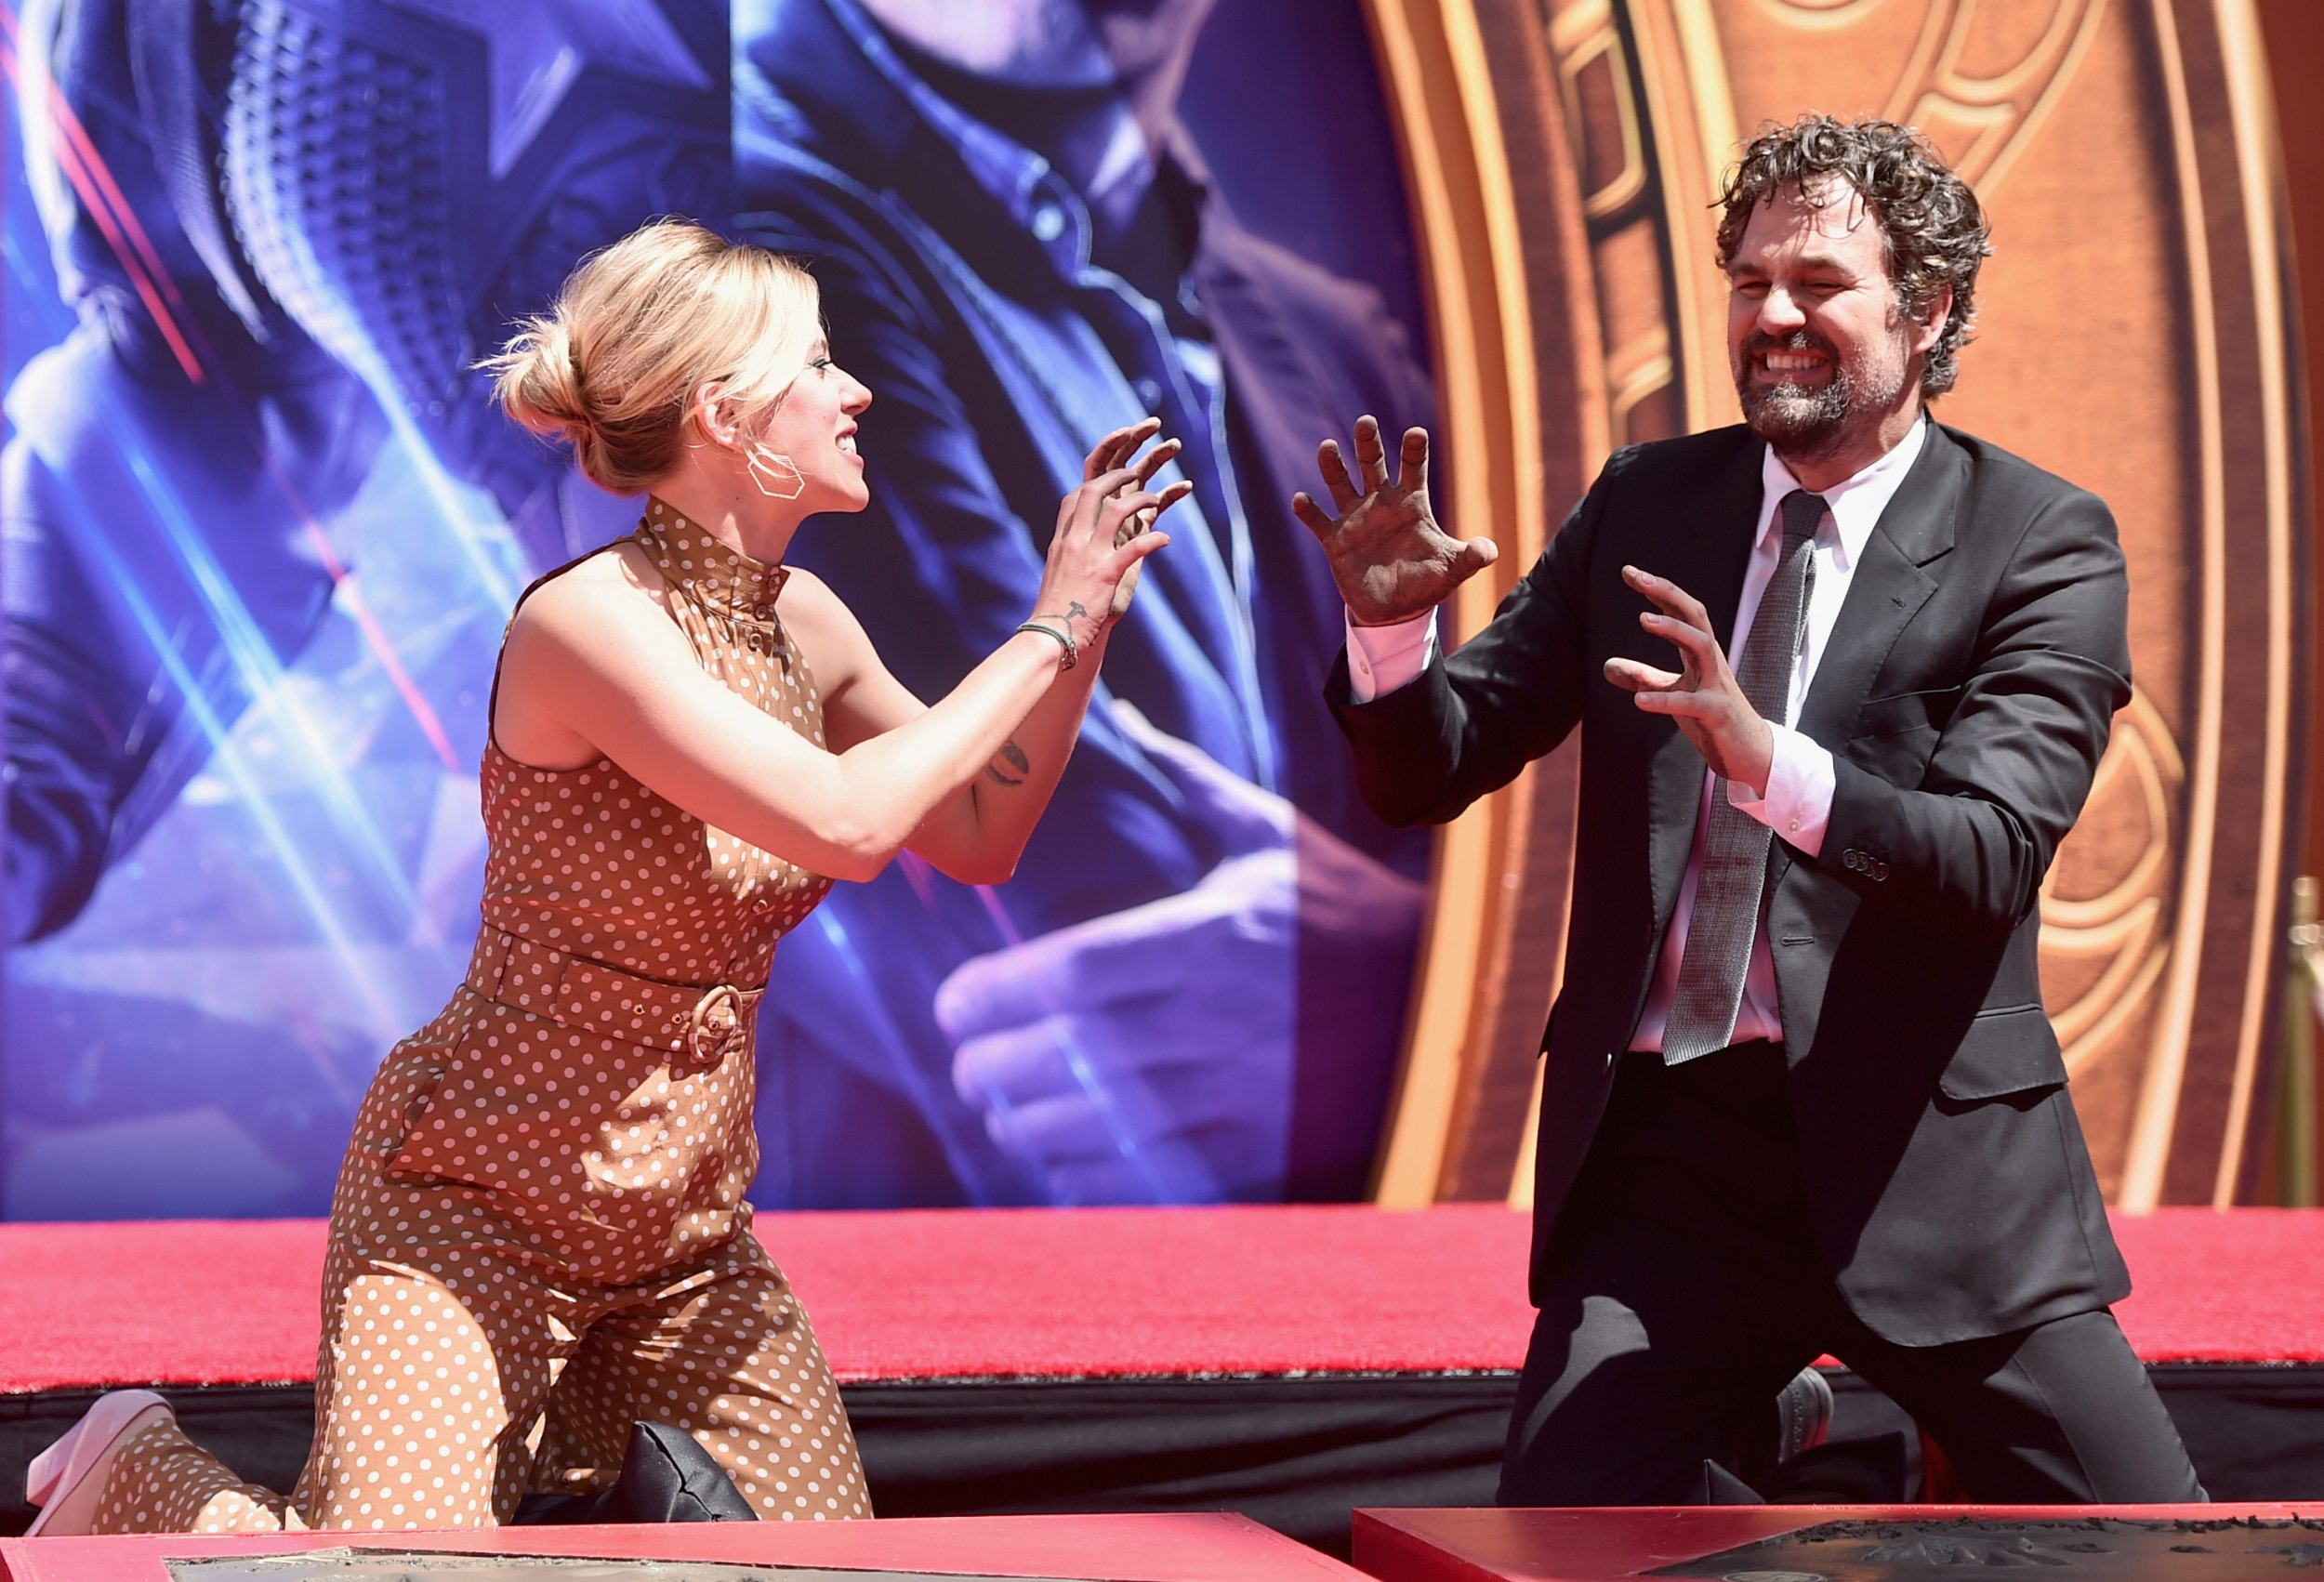 Avengers: Endgame stars are immortalised at Hollywood hand and footprint ceremony